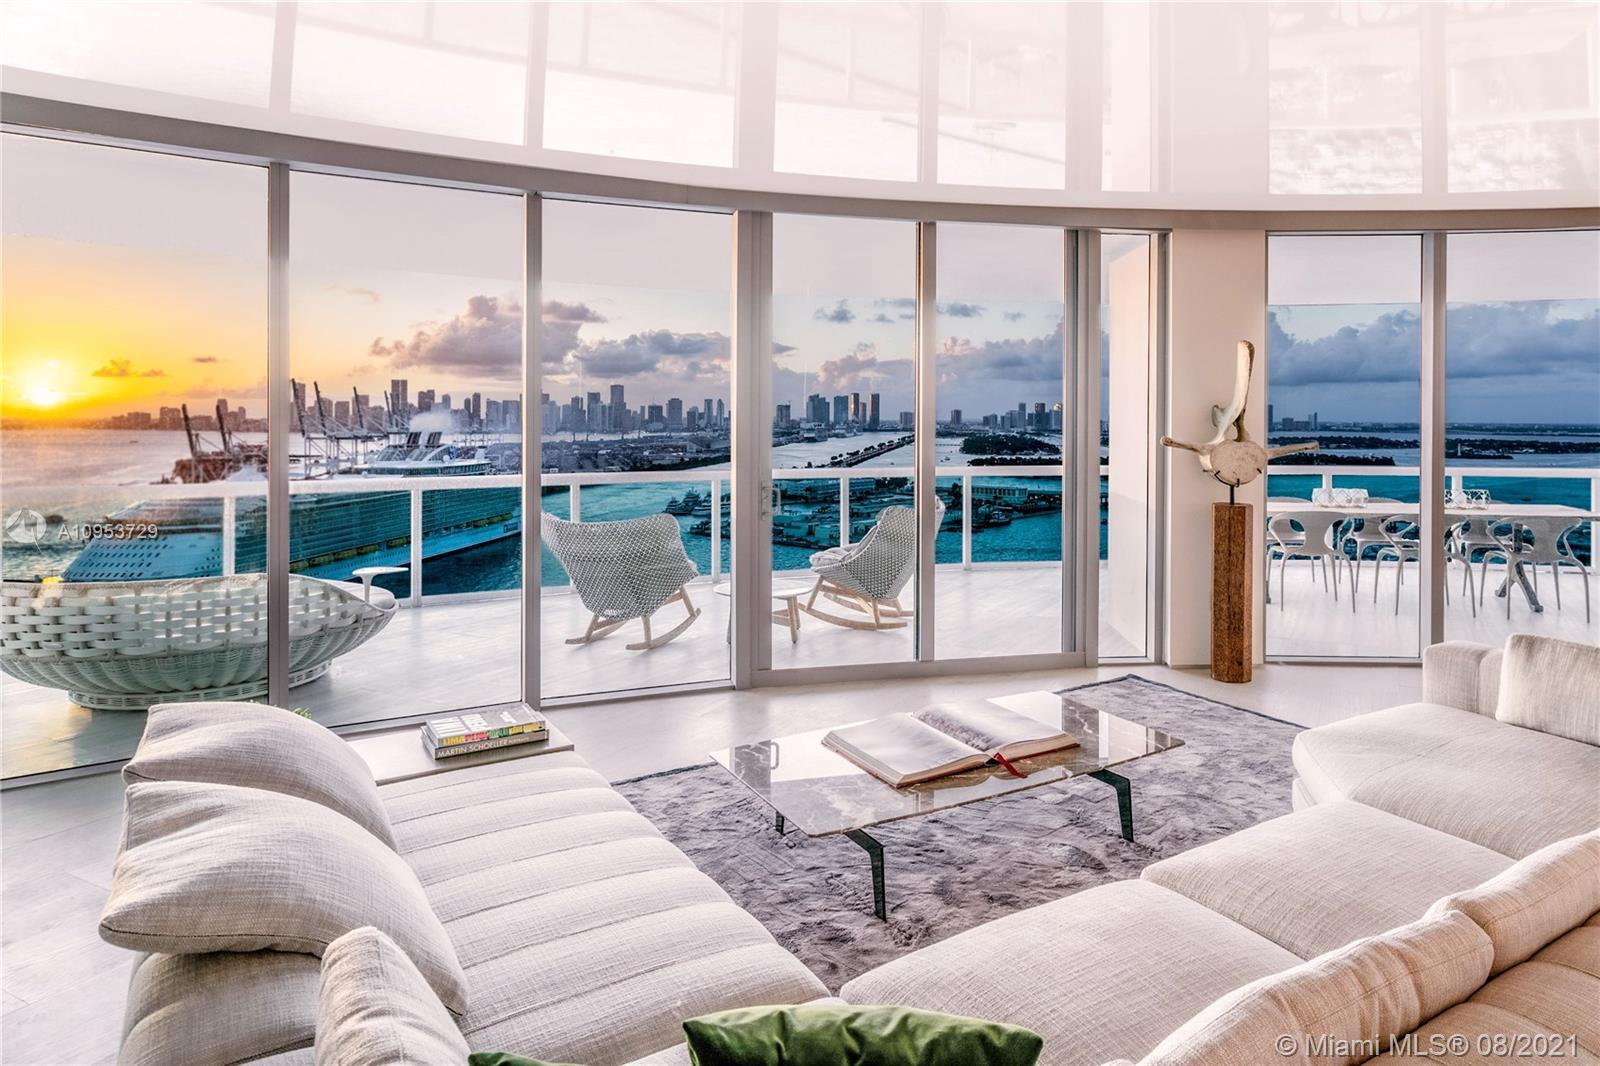 """Brand New, Sleek & Modern, and MOVE IN READY! NO EXPENSE SPARED to deliver this beautifully finished and furnished 3BR stunner to market. Known for its spectacular curved shape, wide open 3,365sf floor plan, and 300 degree views, the 01 line at Murano Portofino is without peers South of Fifth. Enjoy breathtaking expansive views of Ocean, Sunrise, Sunset, Beach, Skyline and Bay. Dine Al Fresco under the Miami stars on the 14 ft wide balcony. Entertain to your hearts desire in the large open Great Room with 2 living areas and an open Poliform Varenna kitchen. Polished attention to detail with ultra-luxe 16"""" Wide Oak floors throughout, Full Slab marble and Minotti furniture. For discerning buyers who are searching for a grownup apartment in South Beach, look no further. This is your new home!"""